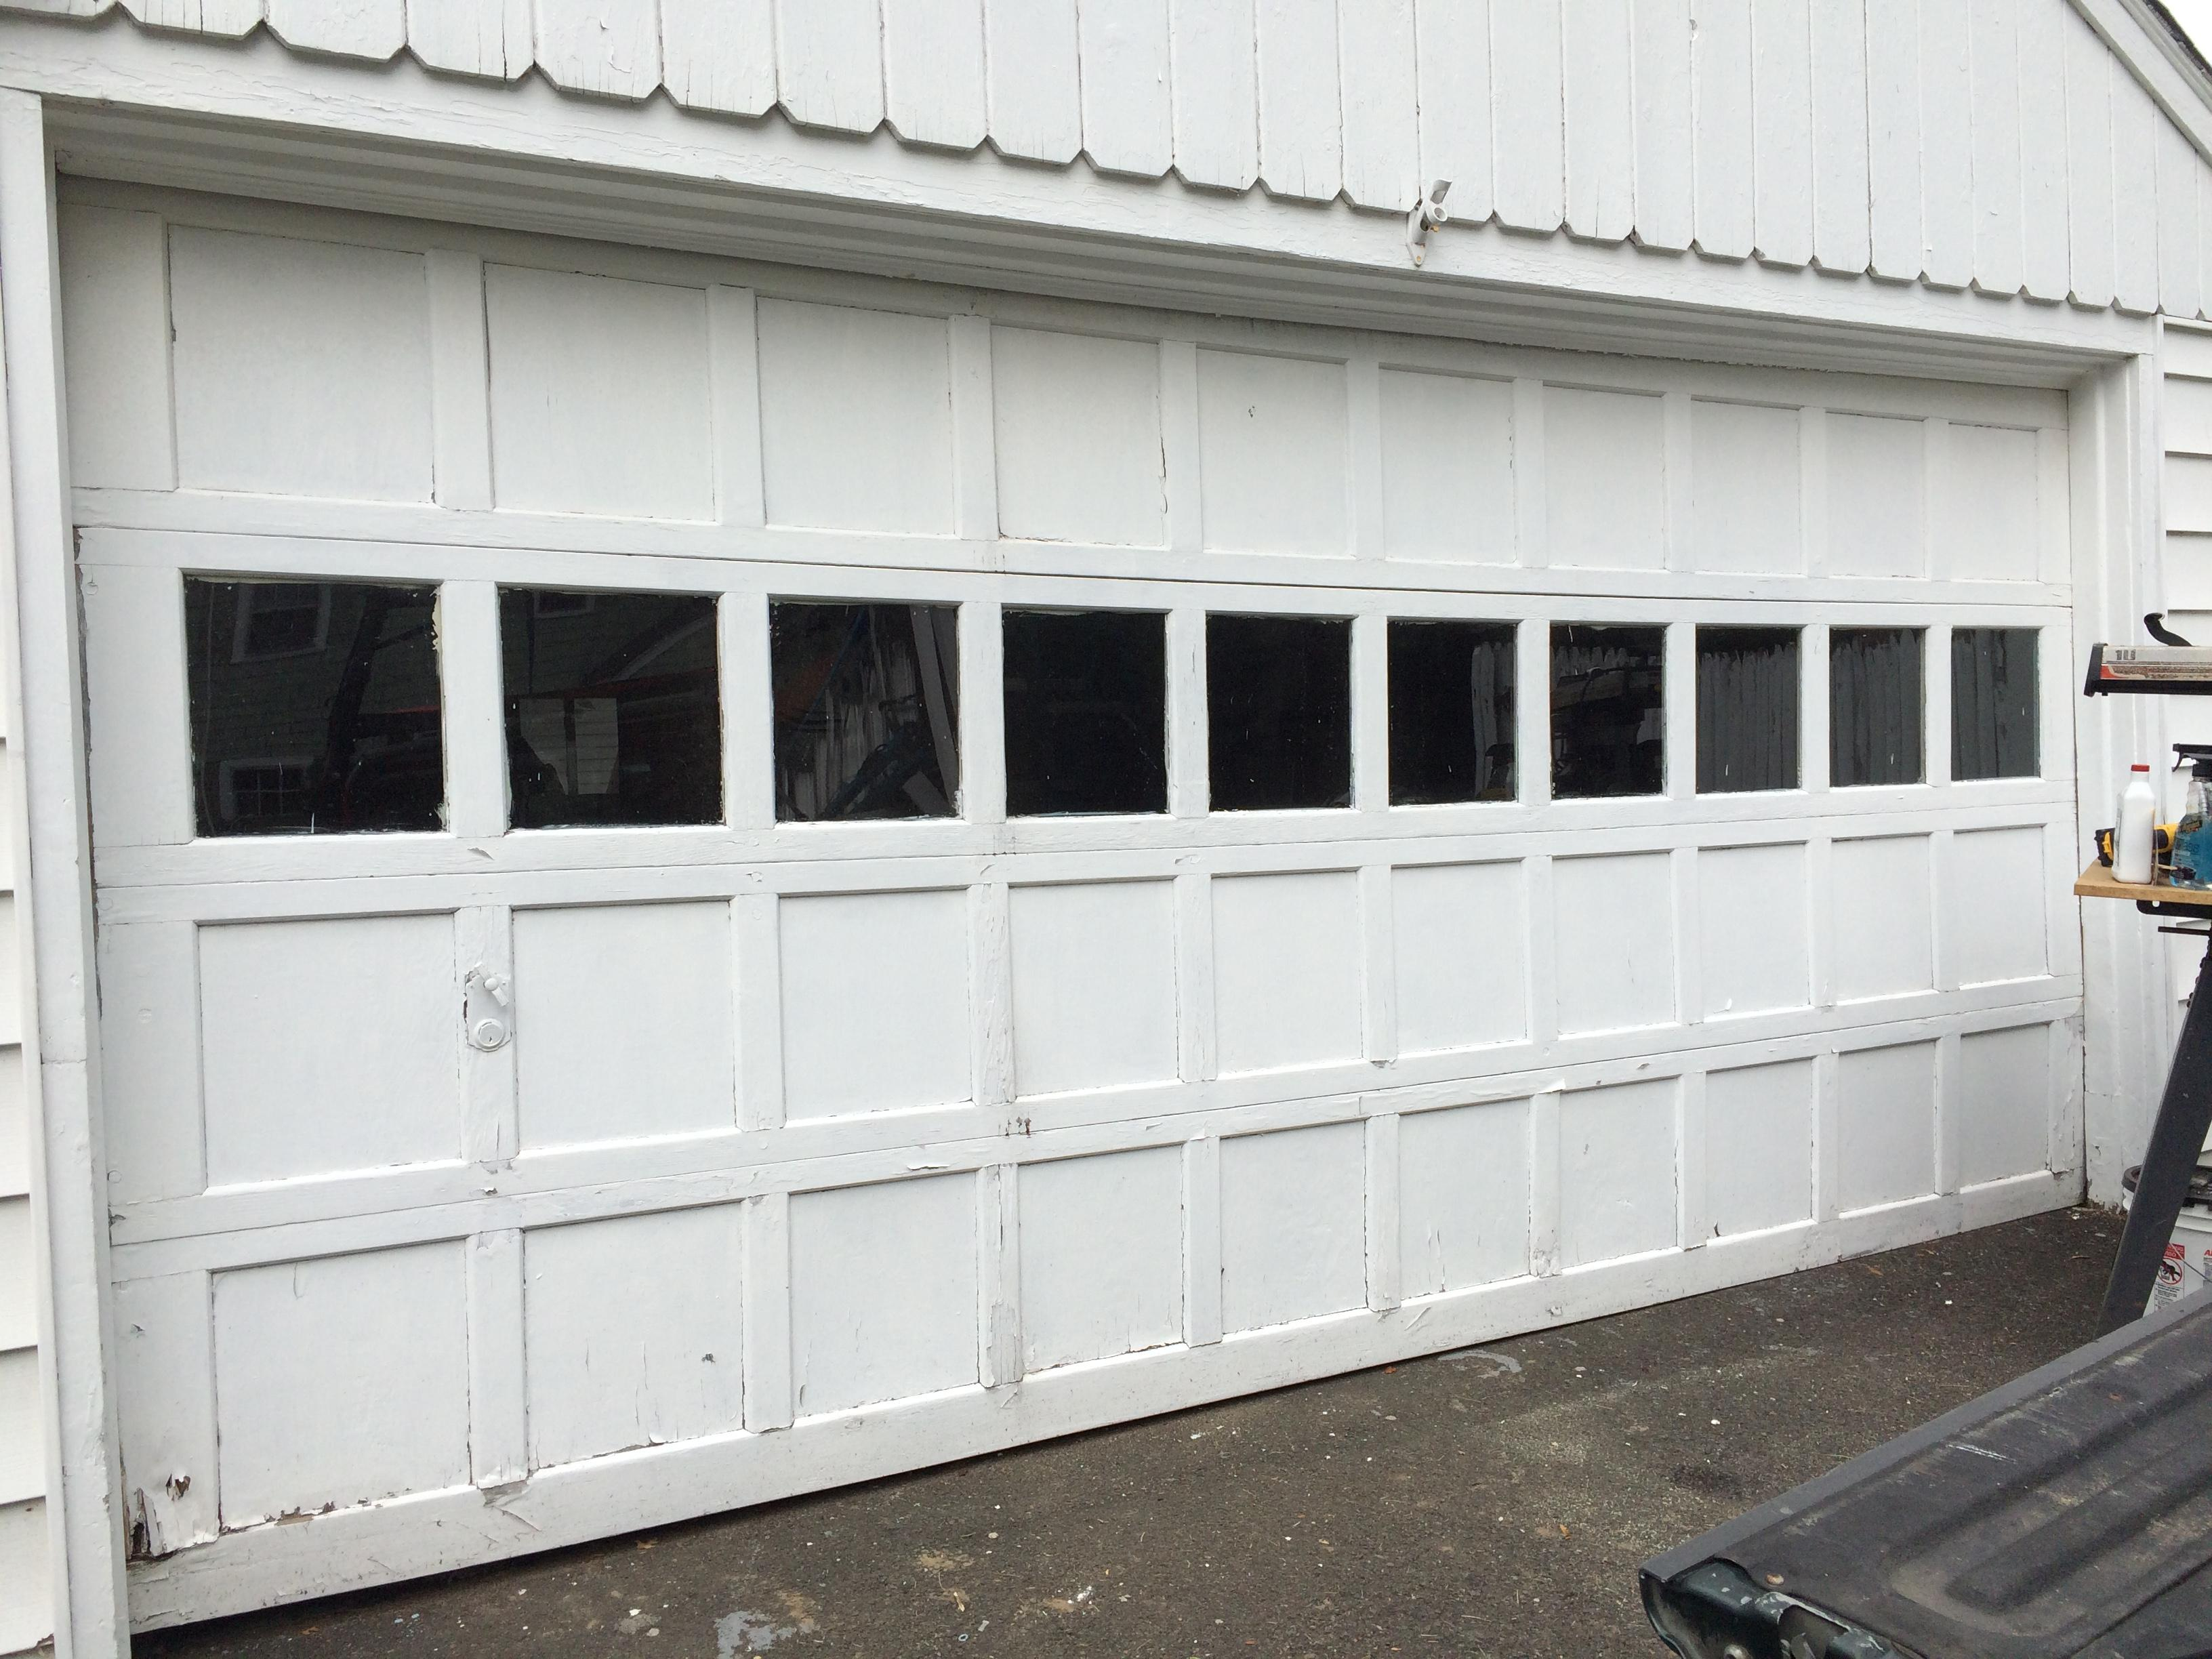 2448 #786553 Overhead Doors Solutions In West Haven CT 06516 ChamberofCommerce  image Overhead Garage Doors Residential Reviews 37133264